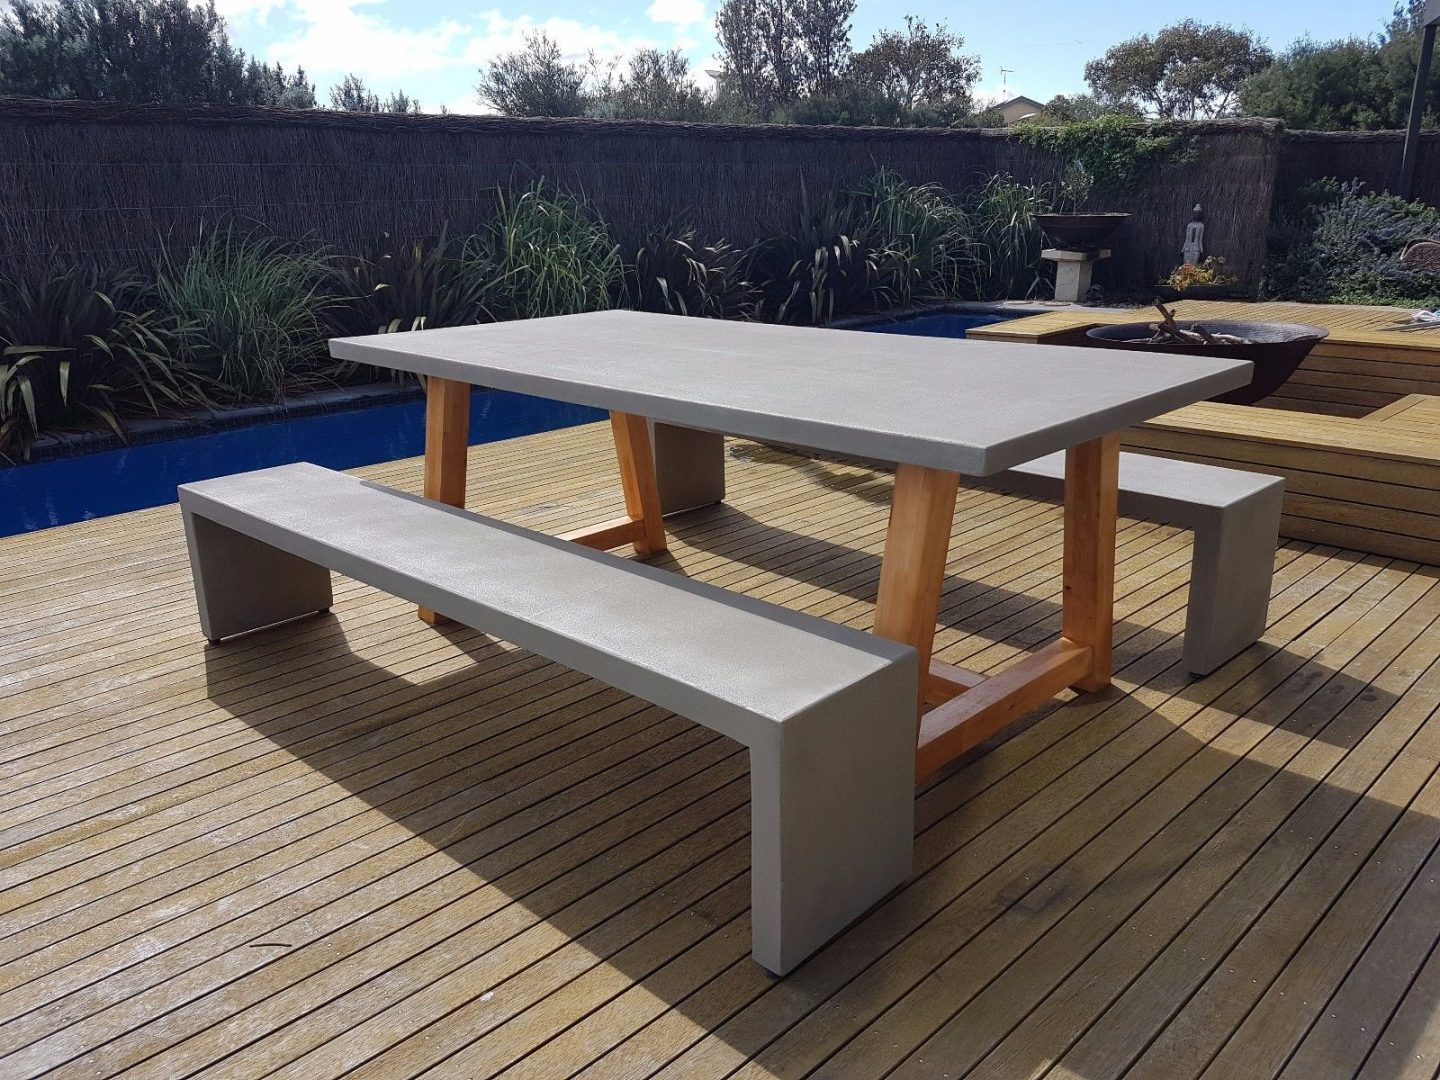 Outdoor furniture 2mt x 1mt grc concrete table 2 x for Outdoor furniture benches